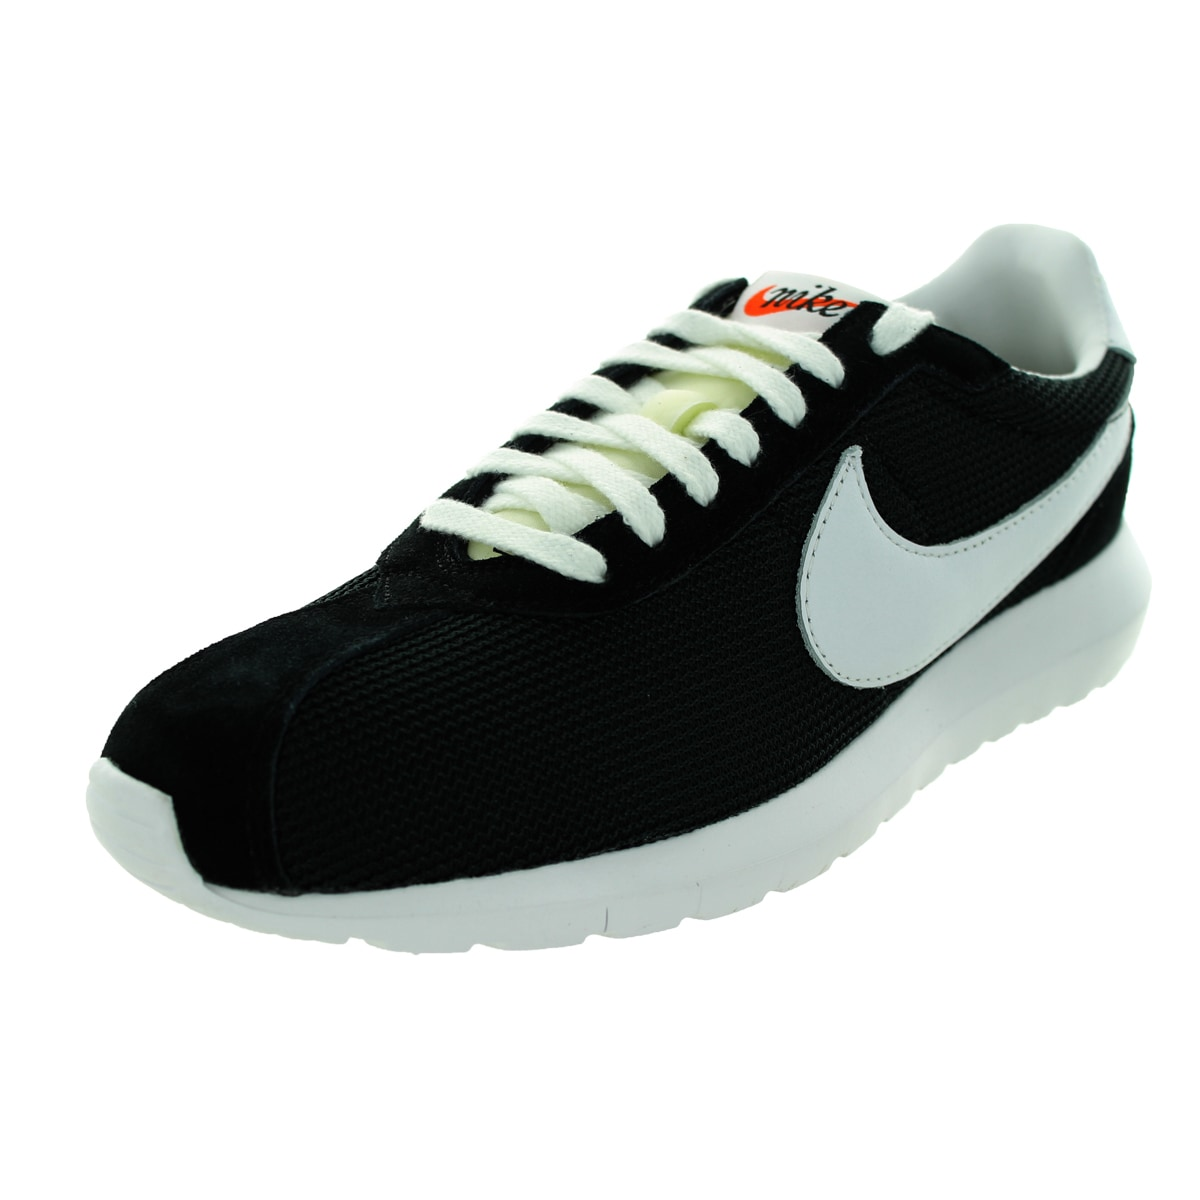 new arrival 59447 2d7a2 Shop Nike Men s Roshe Ld-1000 Qs Black White White Casual Shoe - Free  Shipping Today - Overstock - 12118127